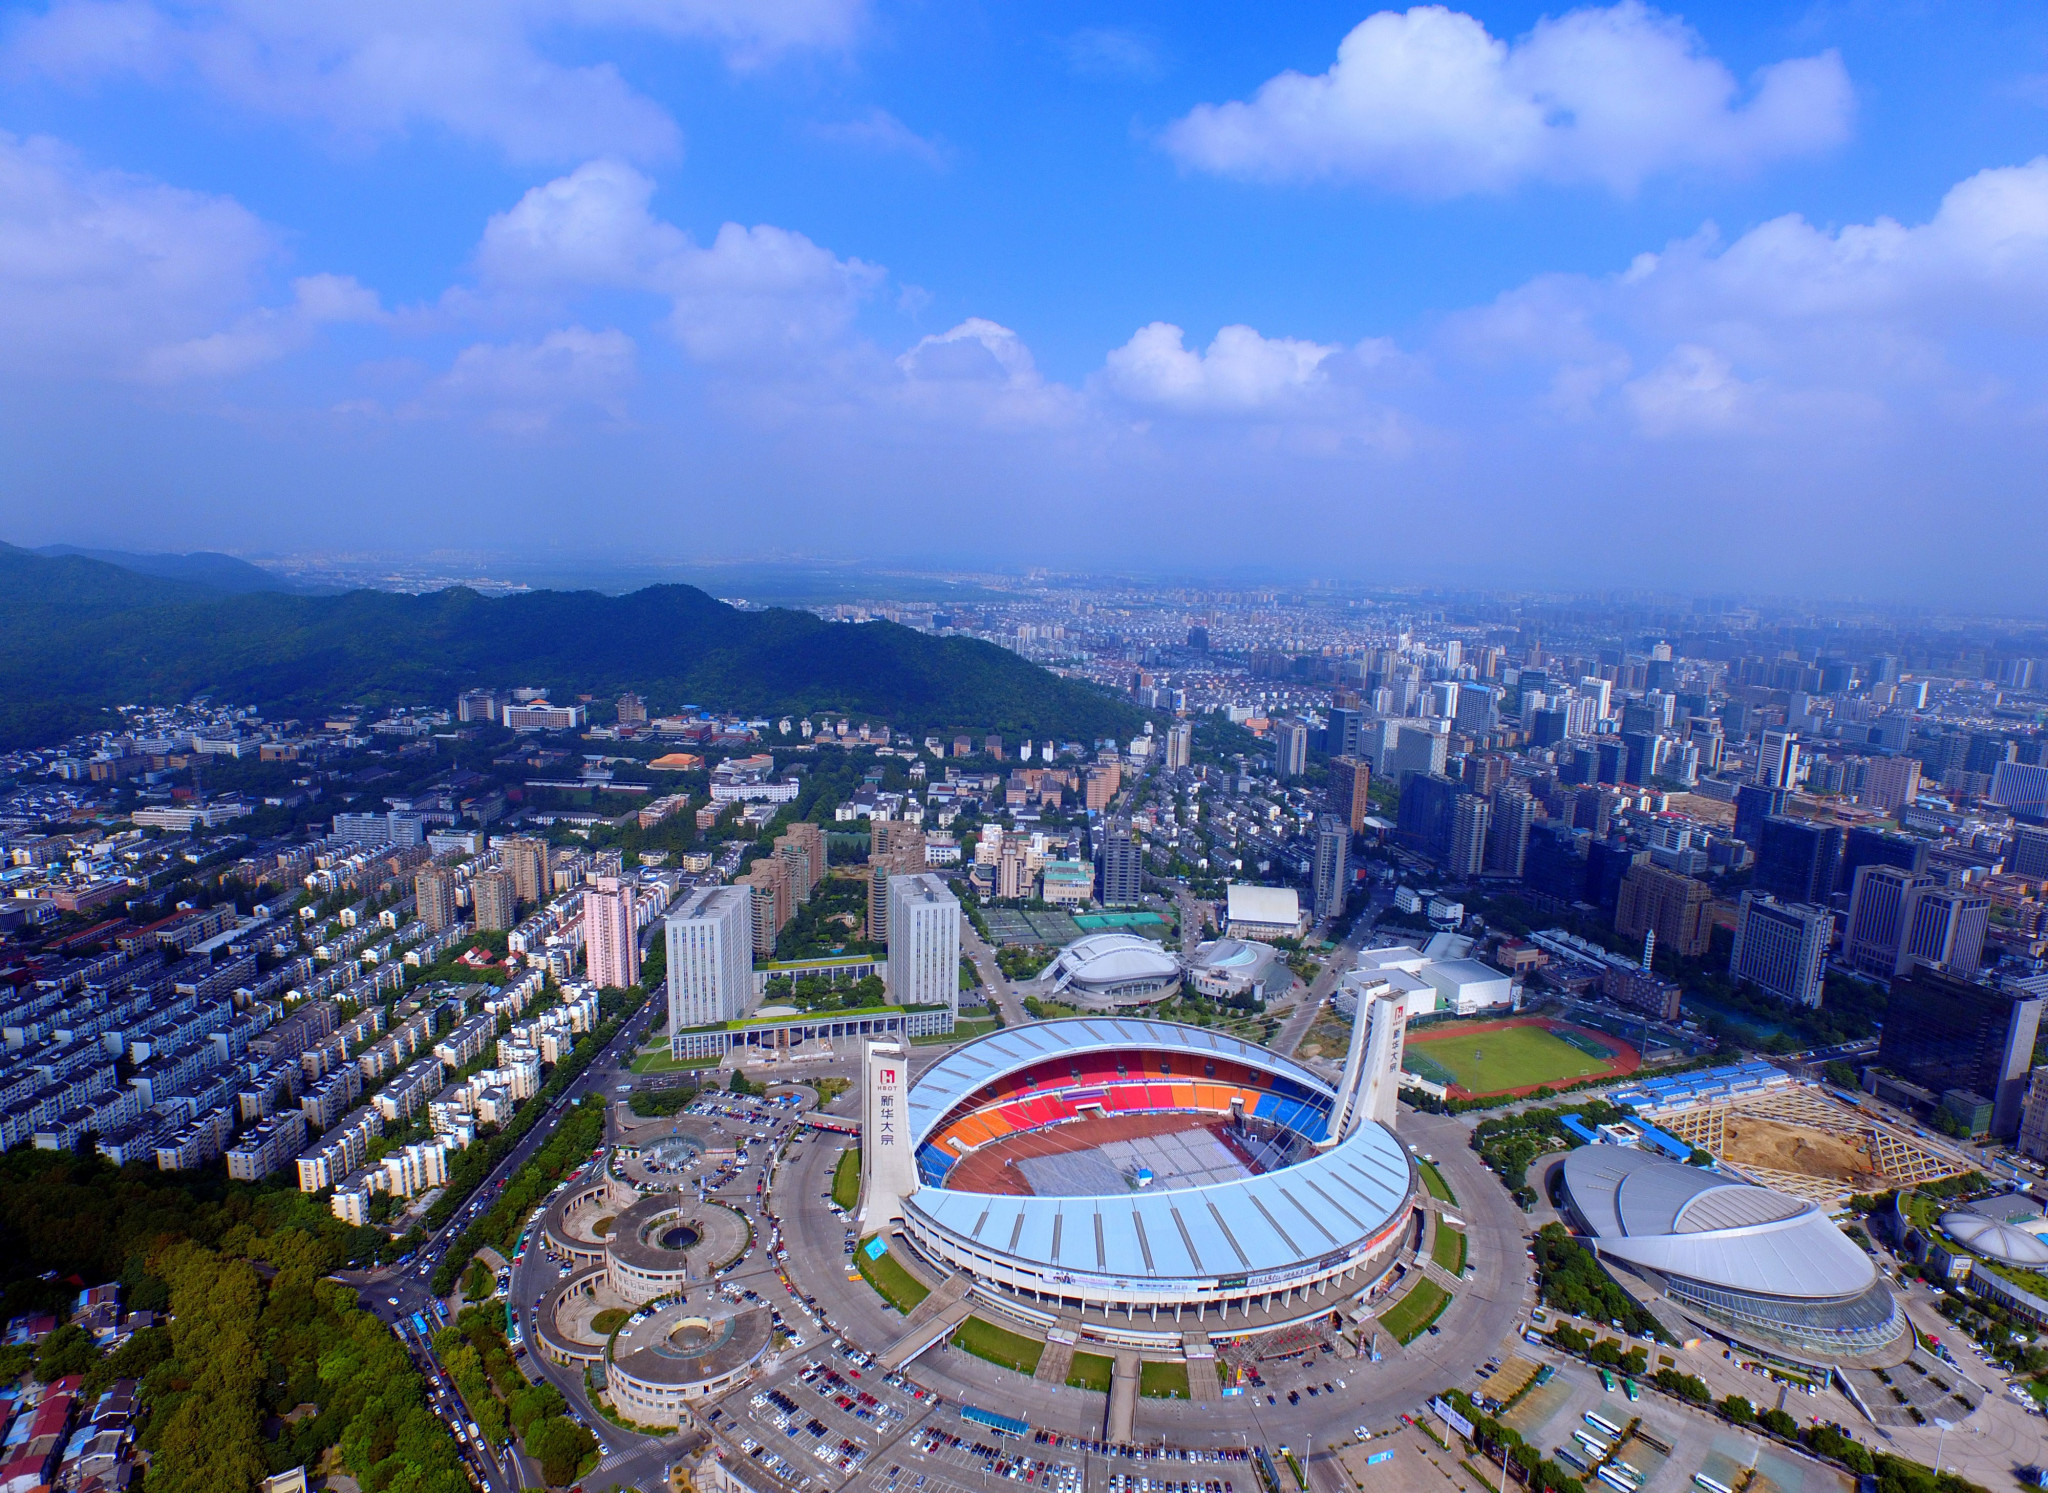 Hangzhou in China is set to play host to the 19th edition of the Asian Games in 2022 ©Getty Images